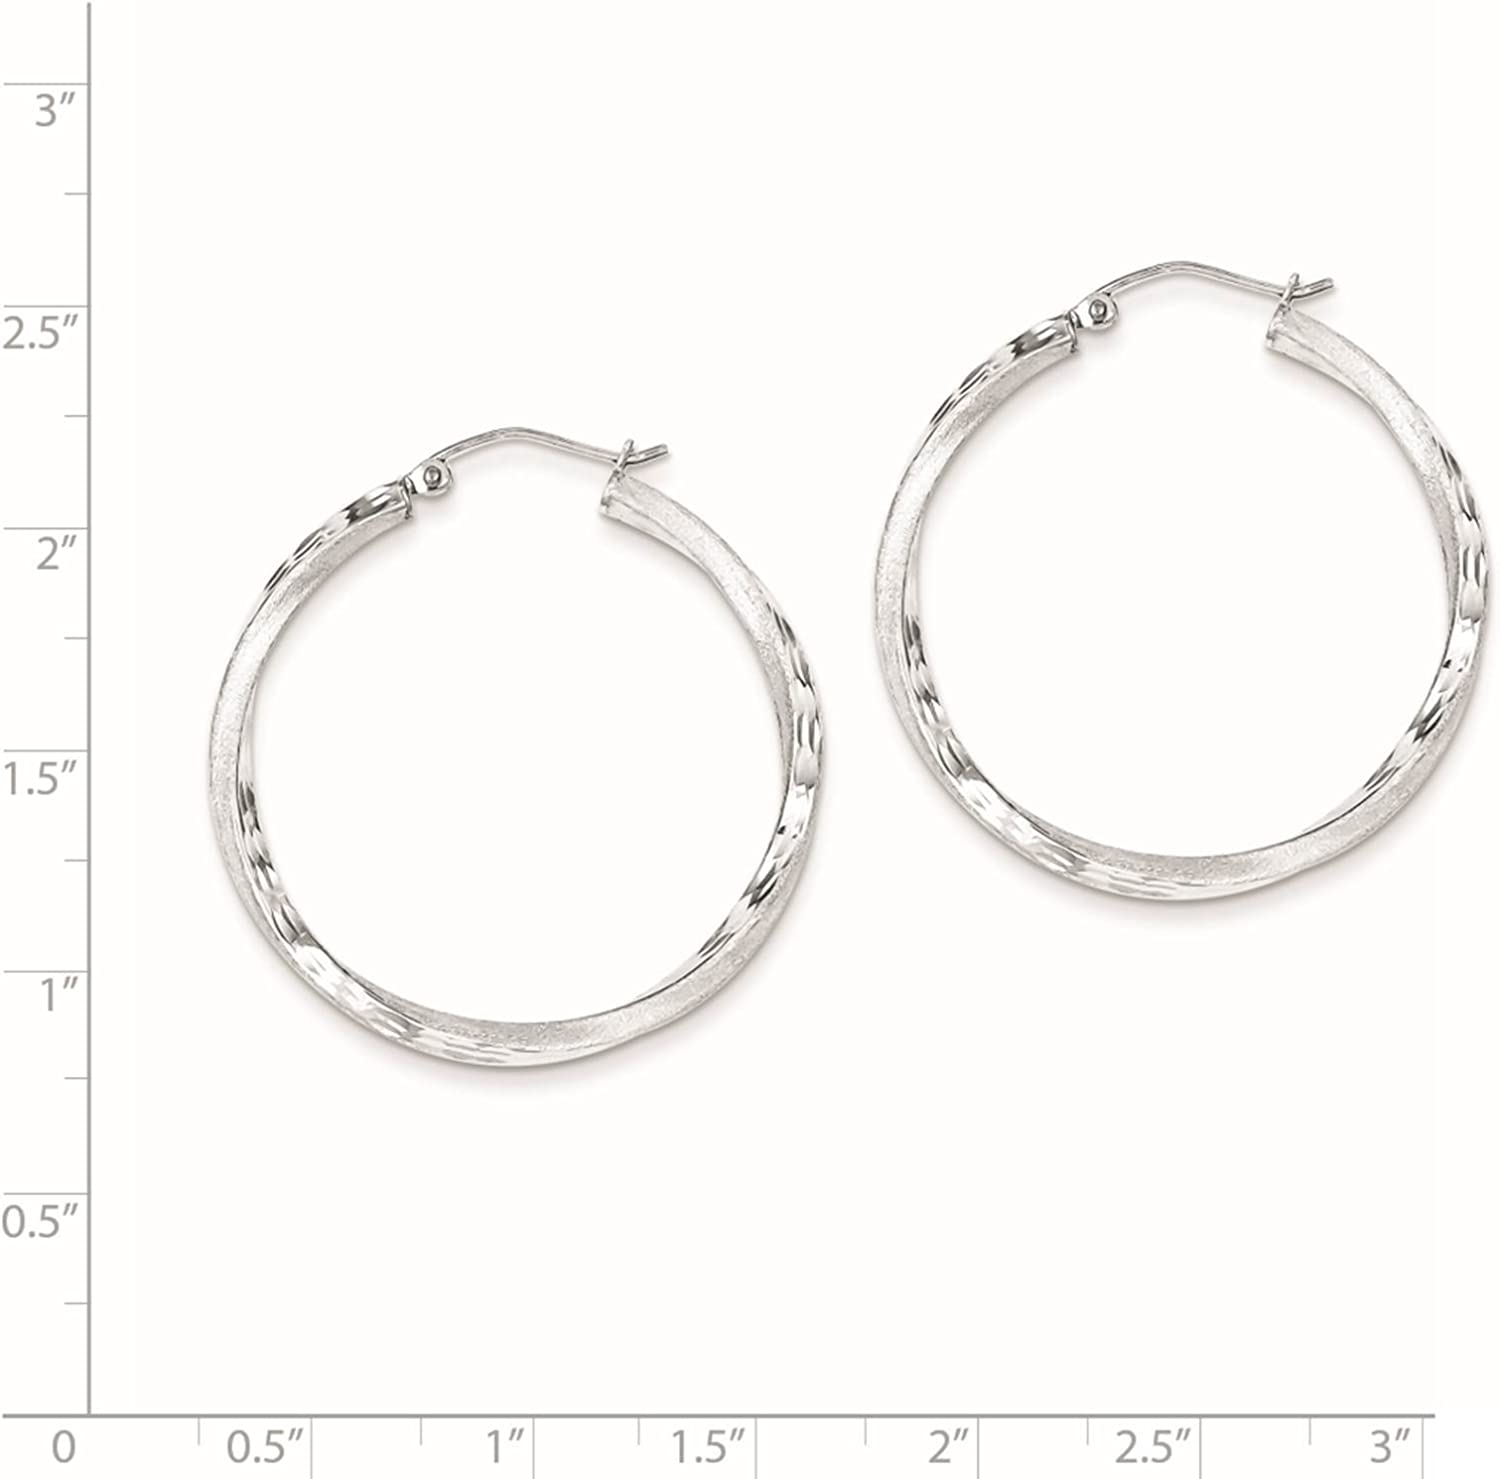 925 Silver Rhodium-plated Polished /& Satin Finish Twisted Hoop Earrings 2.5mm x 37mm